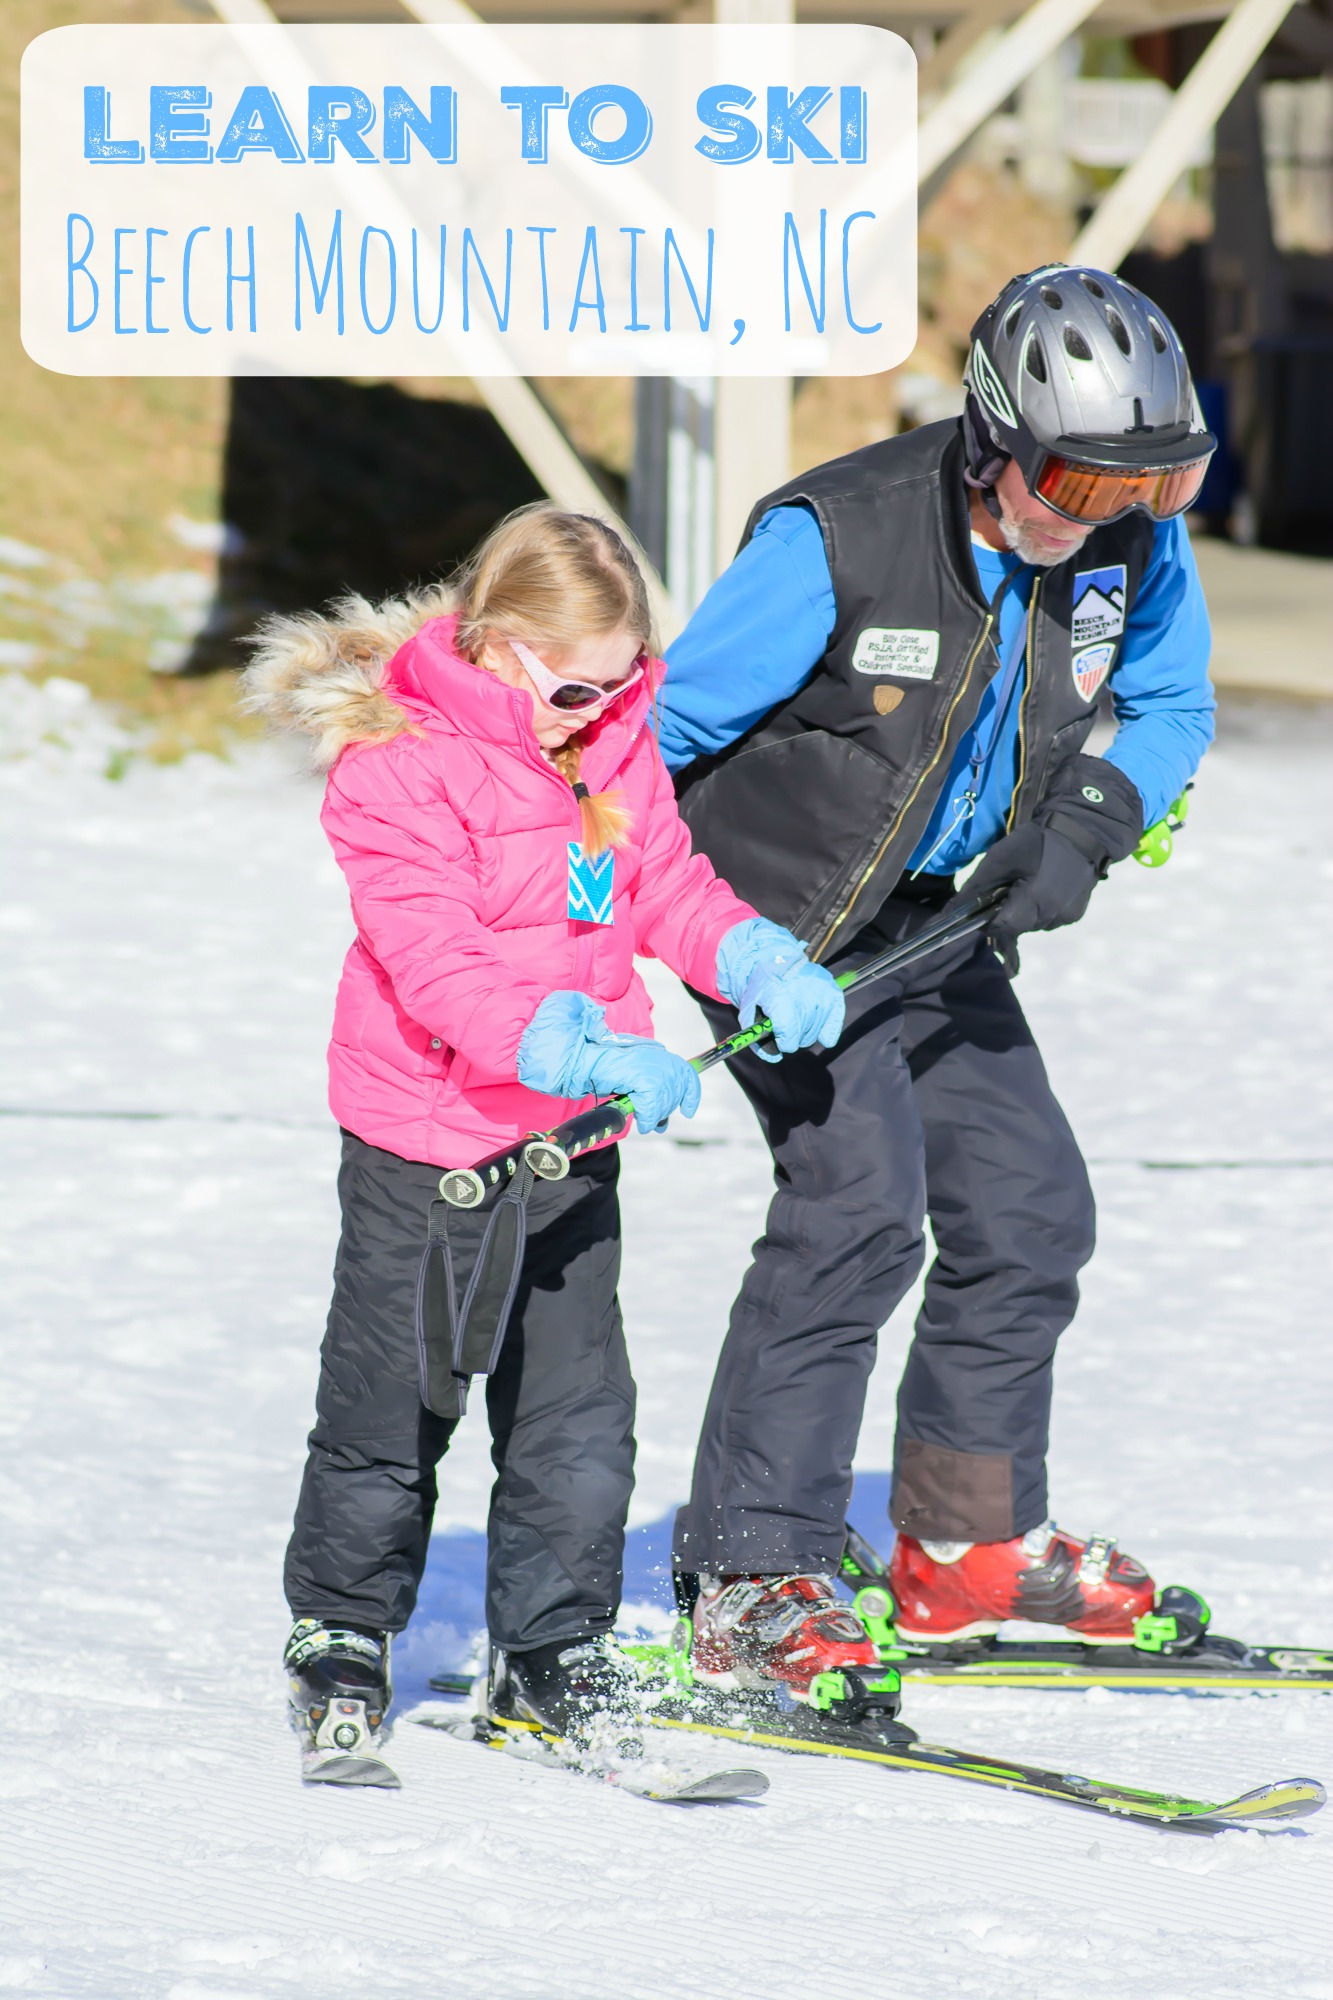 Welcome to Beech Mountain Resort, a place where you can learn to ski in a no pressure, welcoming and fun environment with expert teachers! If you have never skied before, Beech Mountain is the resort for you!